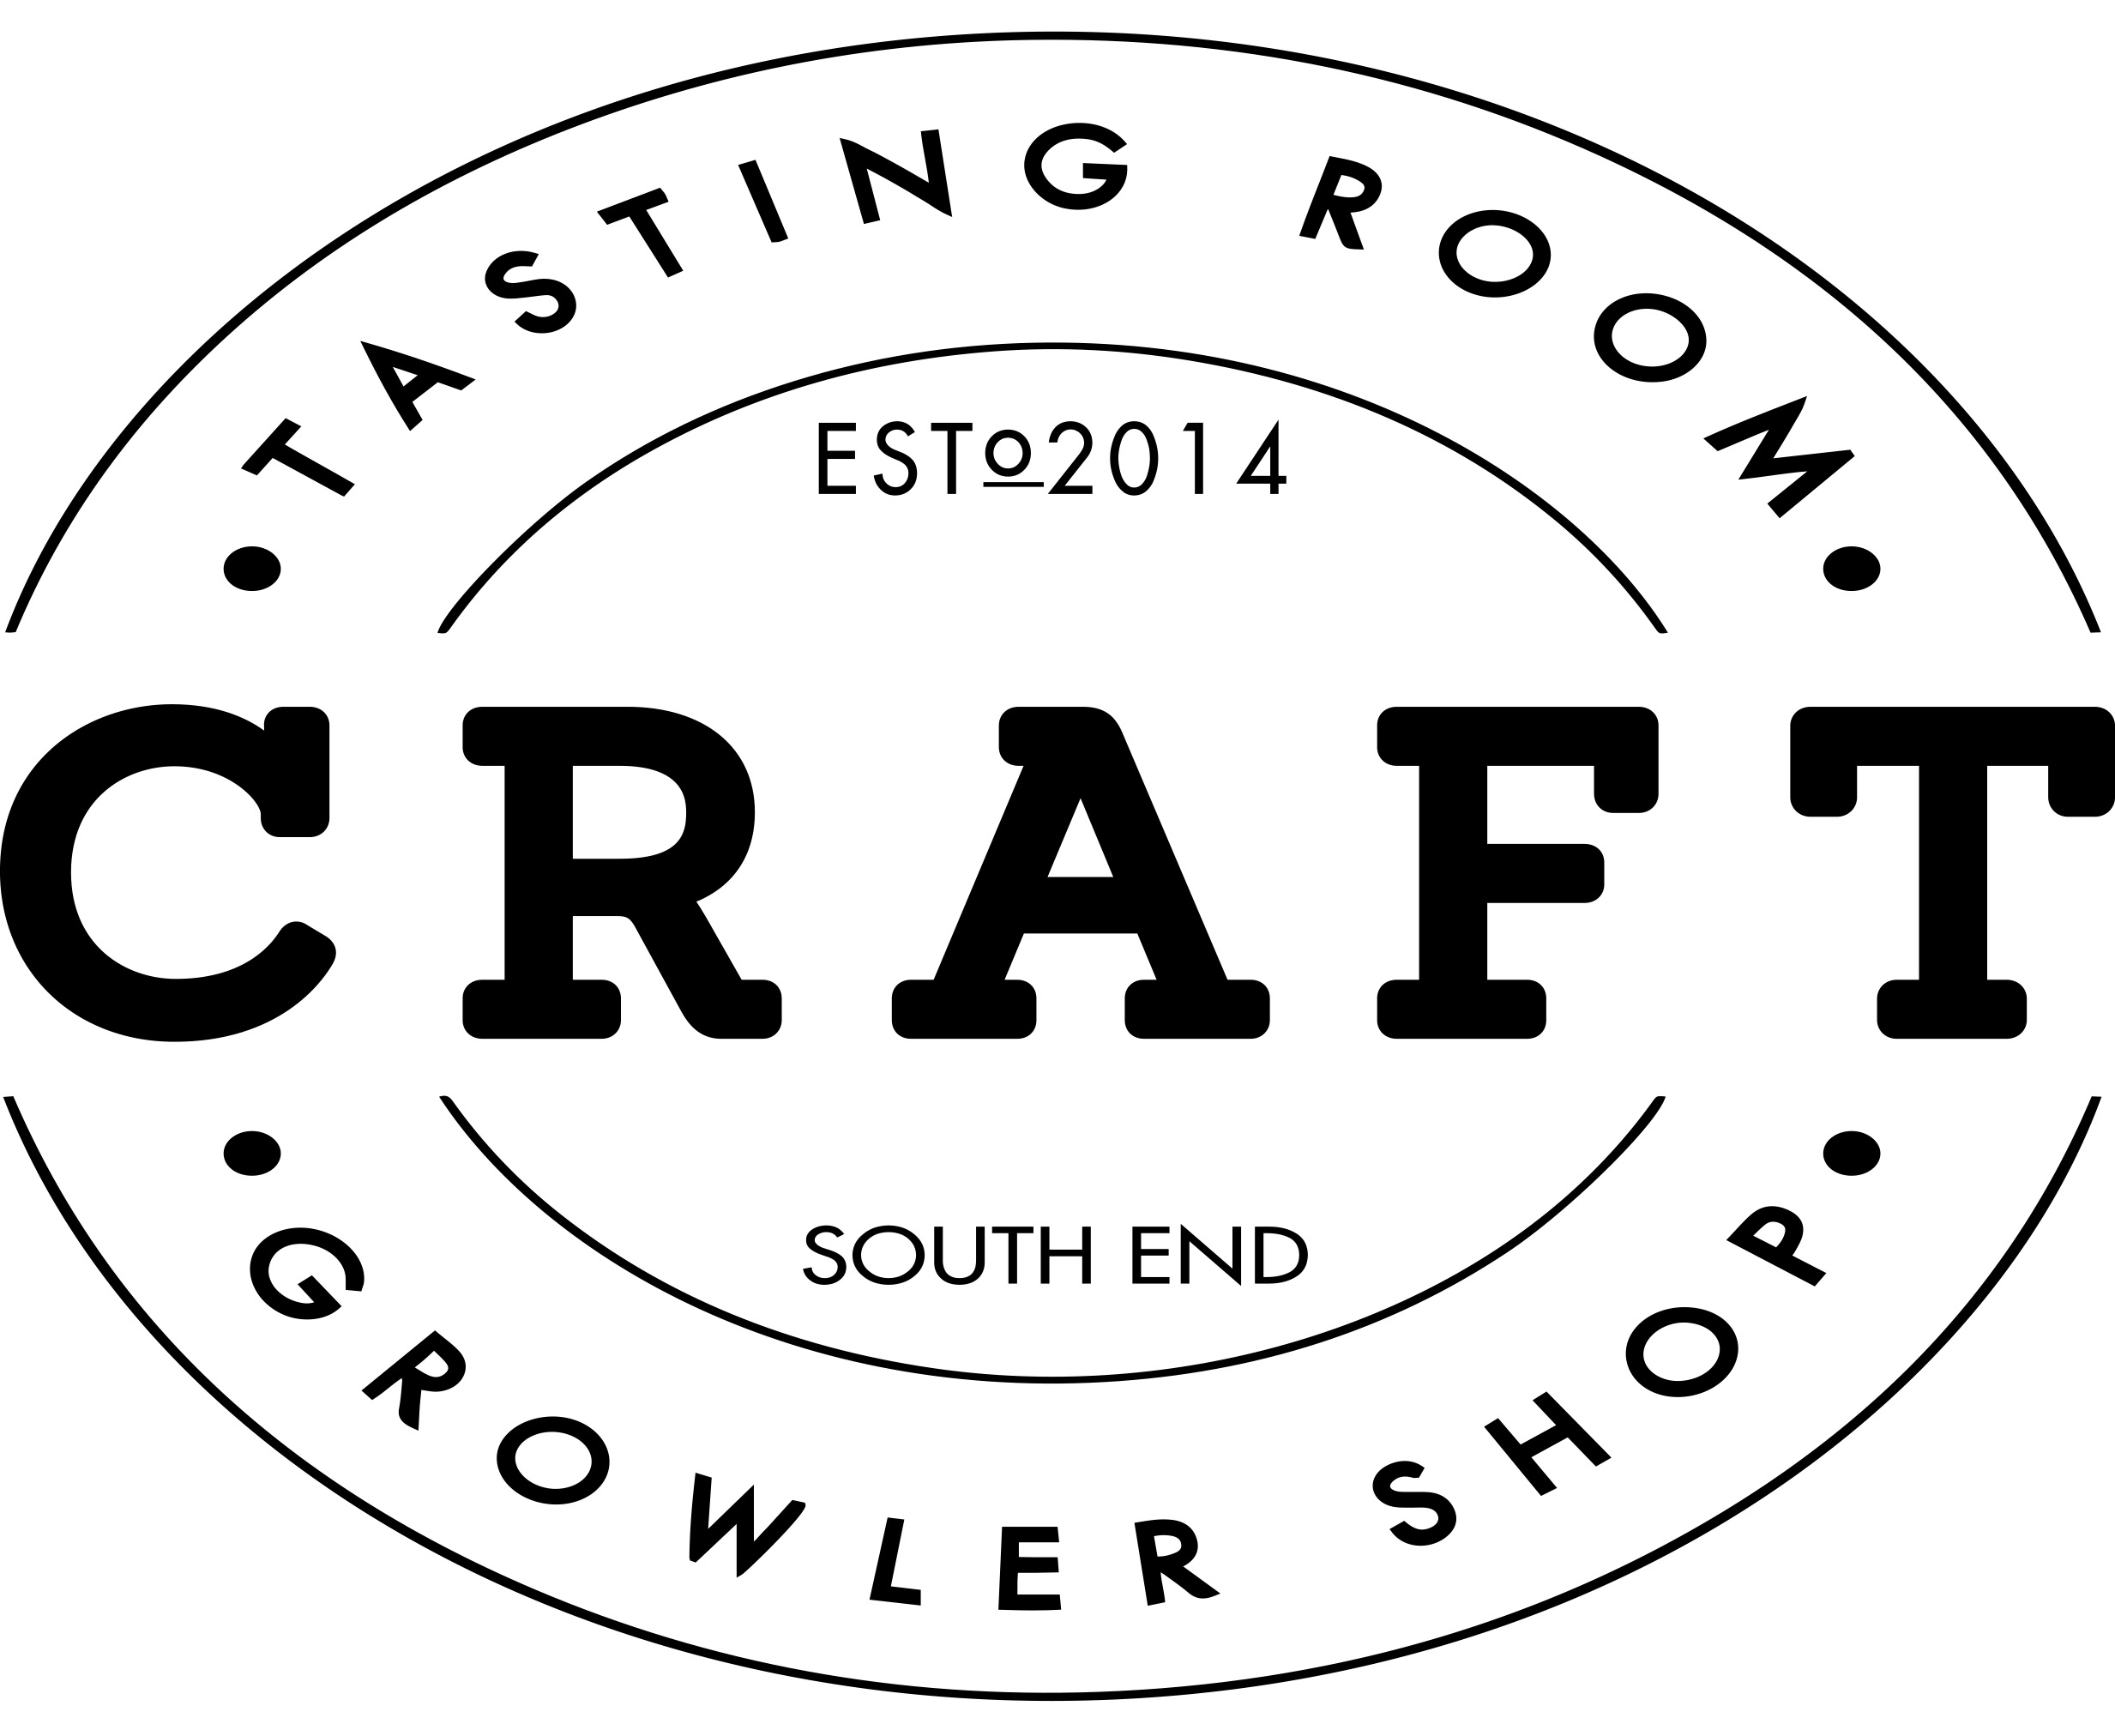 Craft_logo-1.jpg